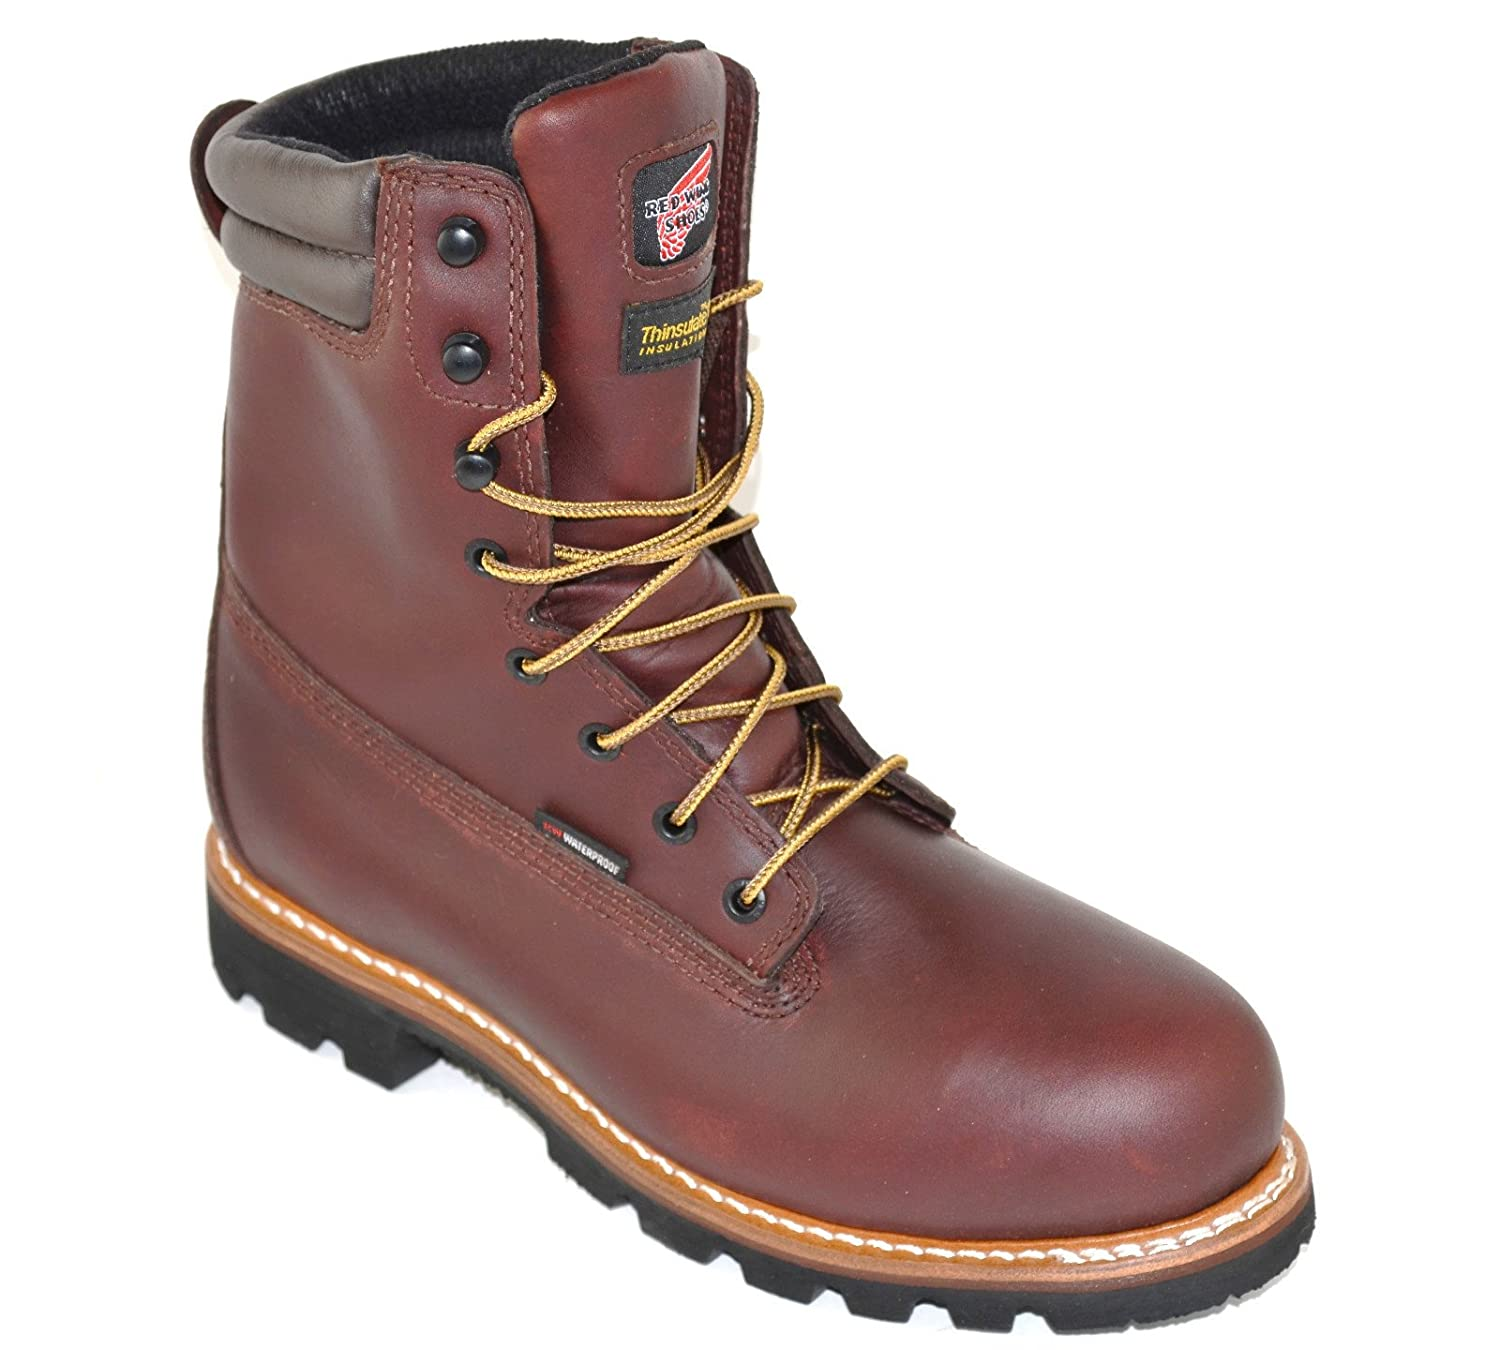 Best Insulated Work Boots in 2013 - Work Boot Reviews